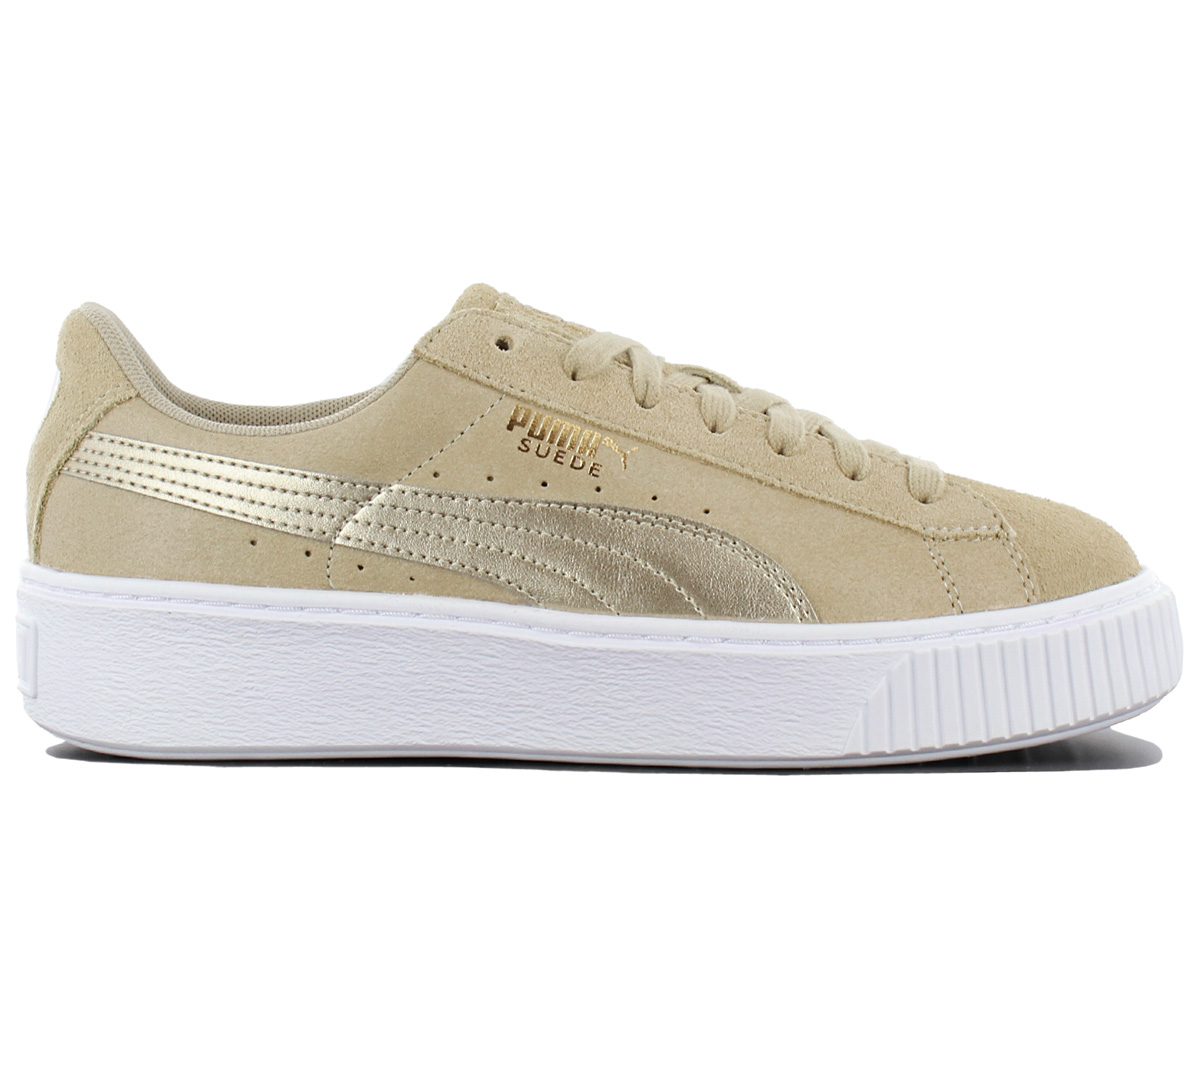 2a63f89d4257 PUMA Suede Platform Safari Sneaker Women s F01 40. About this product.  Picture 1 of 6  Picture 2 of 6 ...